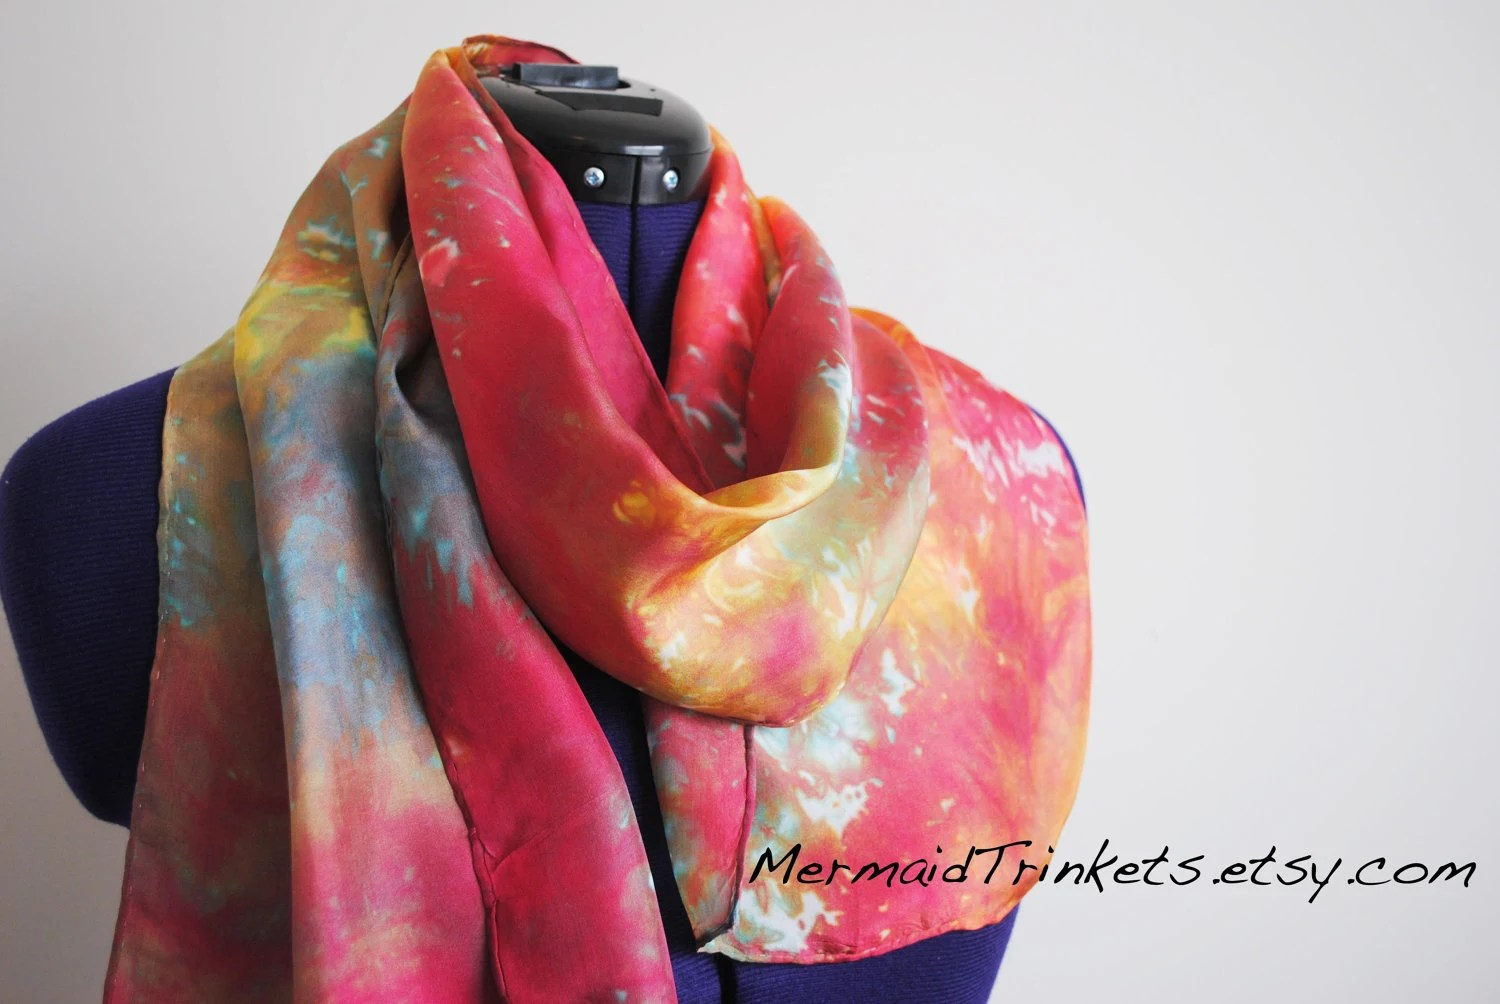 Rainbow Silk long scarf - Hand dyed colorful bright red yellow orange blue